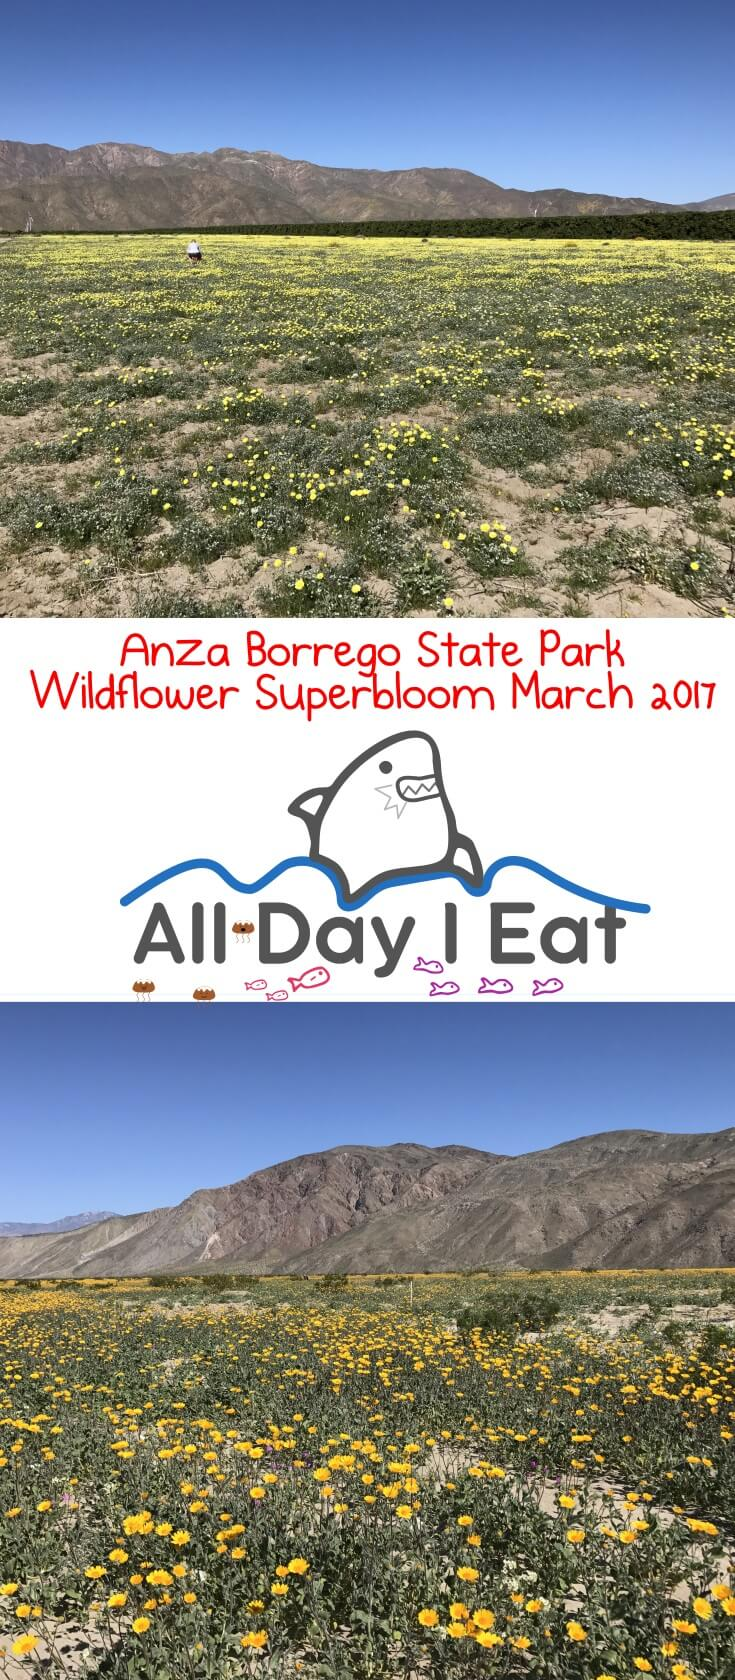 Anza Borrego State Park Wildflower Superbloom March 2017. A spectacular showing of desert wildflowers this year thanks to all the rain in Southern California! | www.alldayieat.com